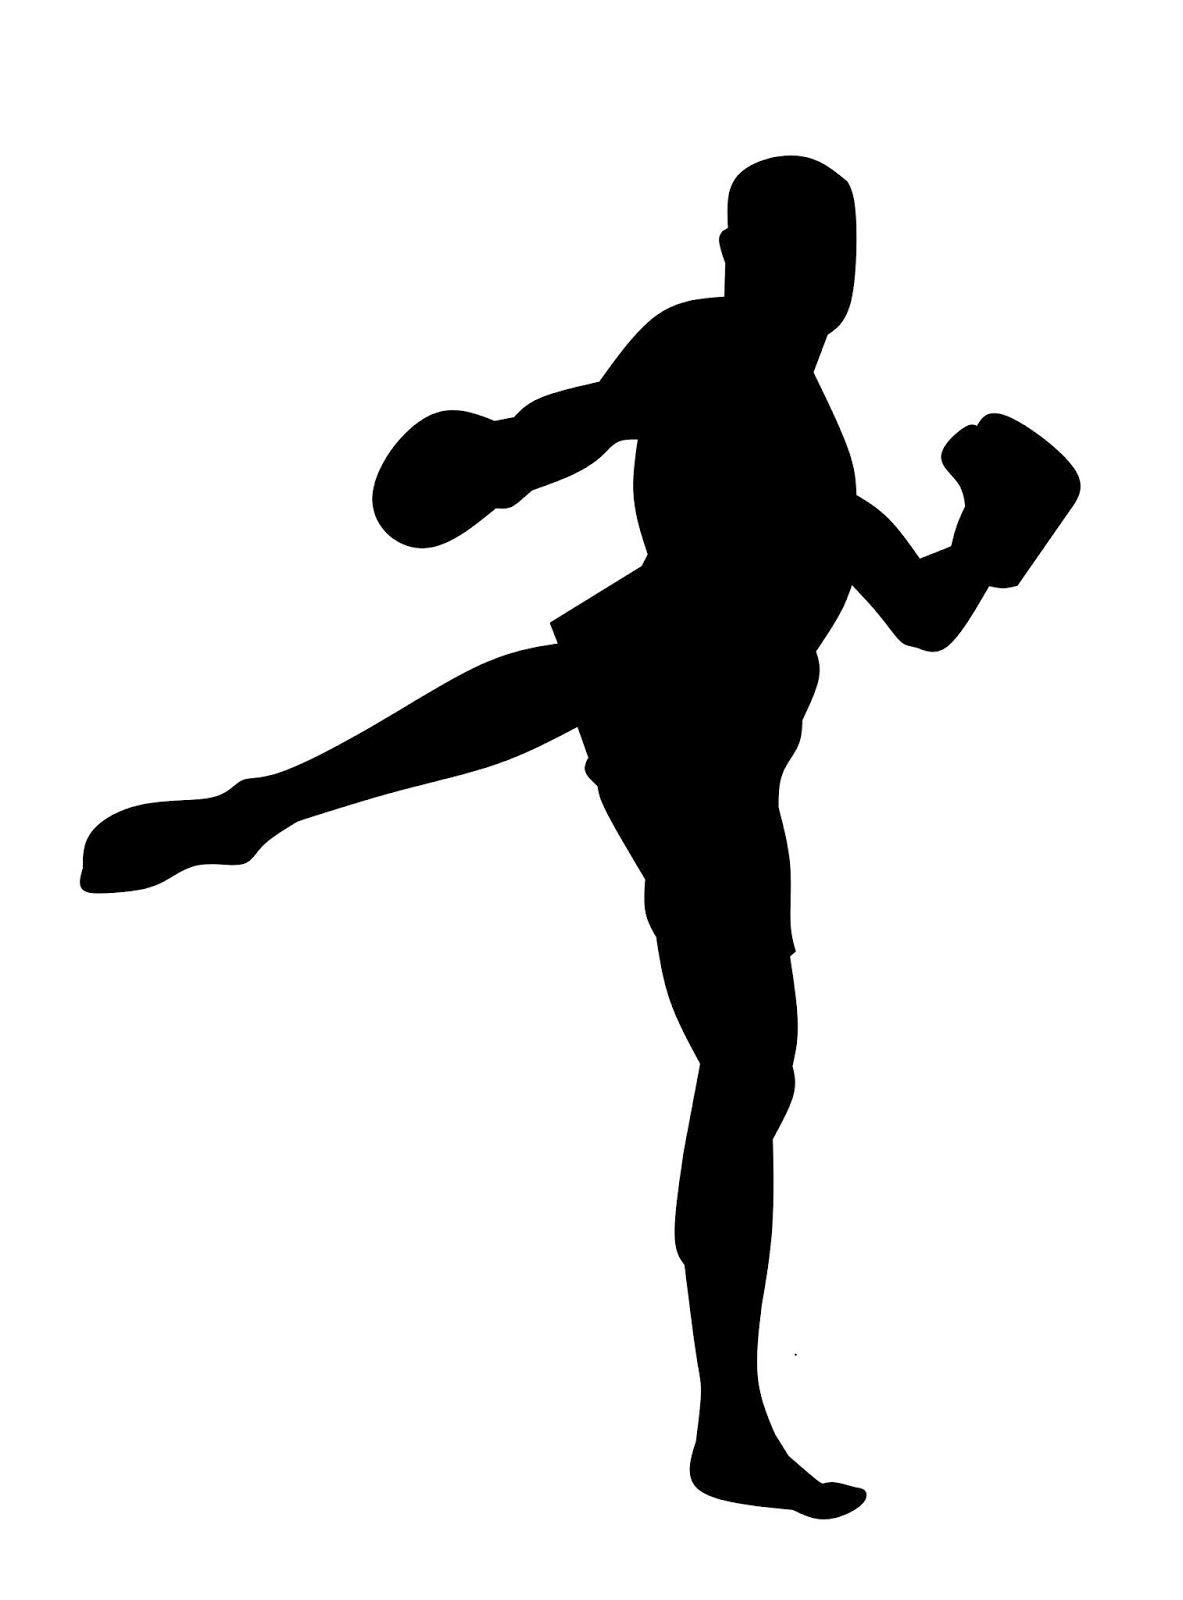 boxing, boxer, man, silhouette, fighter, exercise, fighting, gloves, kickboxing, fight, power, strong, stand, design